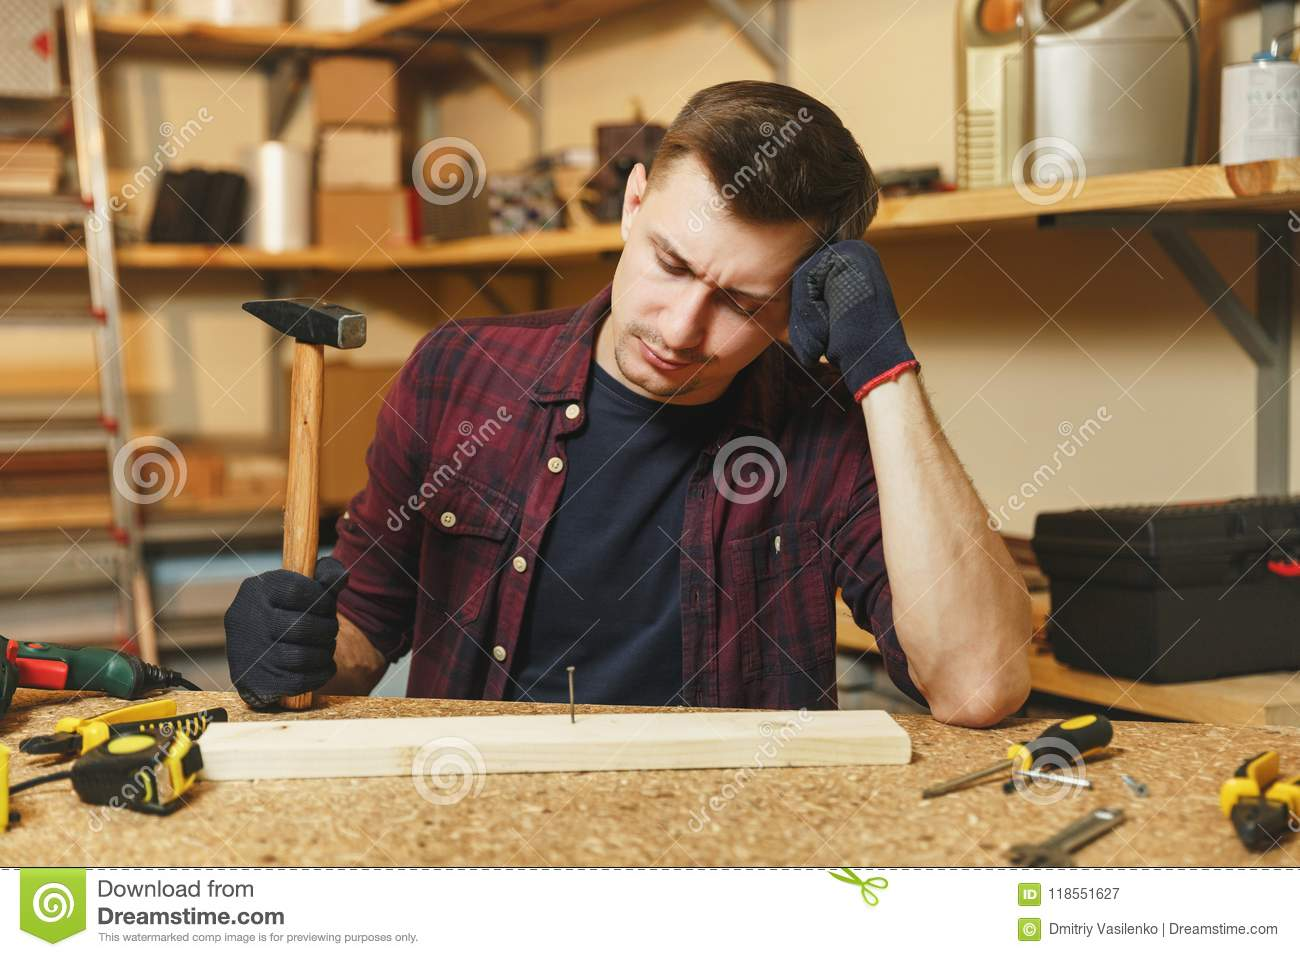 06c36801 Tired upset sad caucasian young man in plaid shirt, black T-shirt, gloves  hammering nails with hammer, working in carpentry workshop at wooden table  place ...